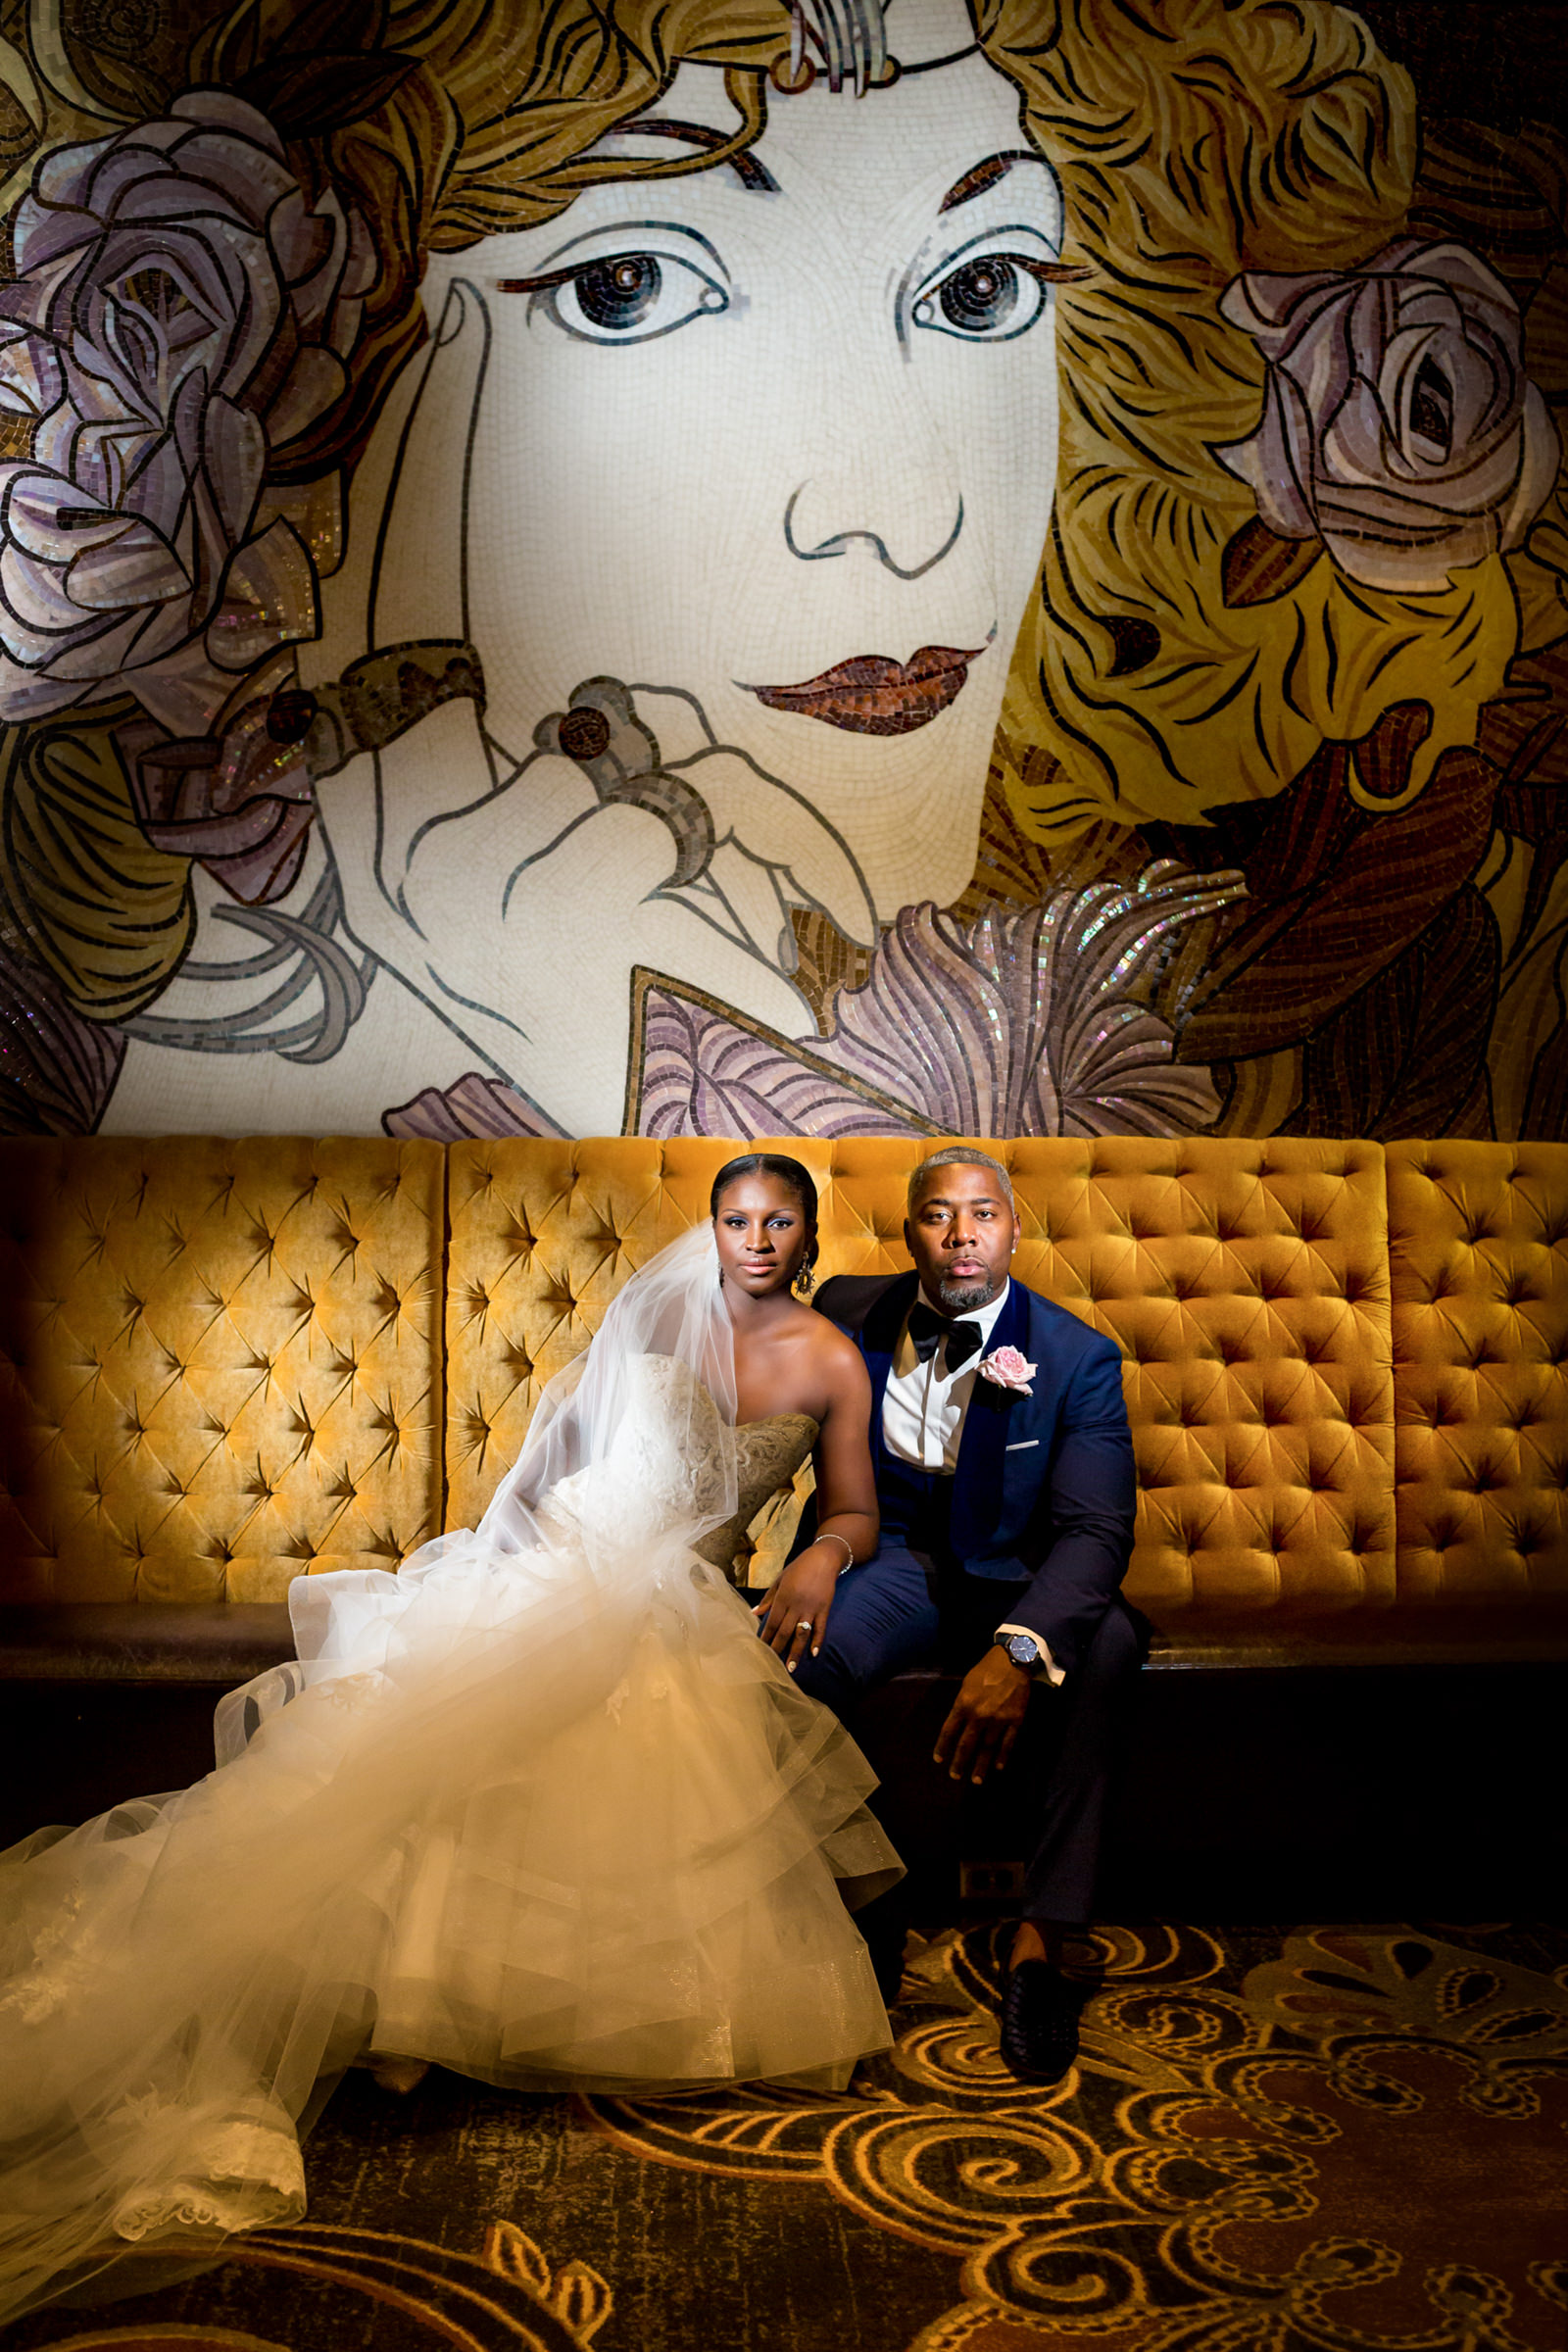 Seated couple portrait under striking mural - photo by Procopio Photography